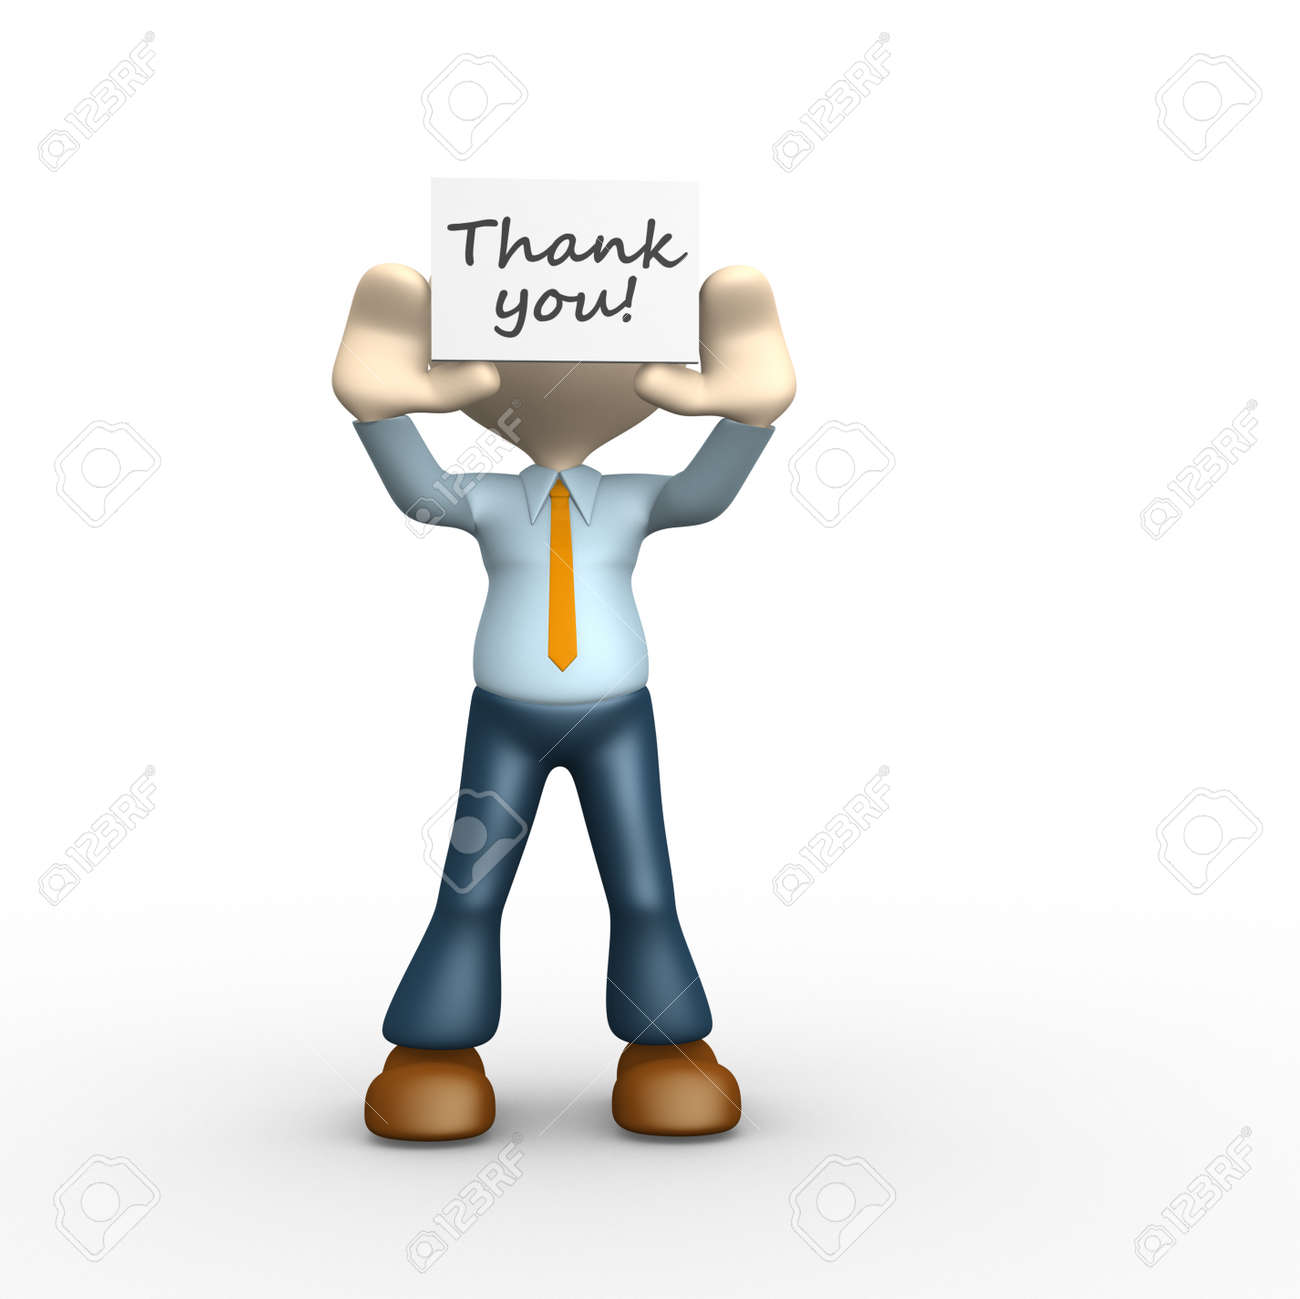 3d people - man, person holding thank you board Stock Photo - 25021719